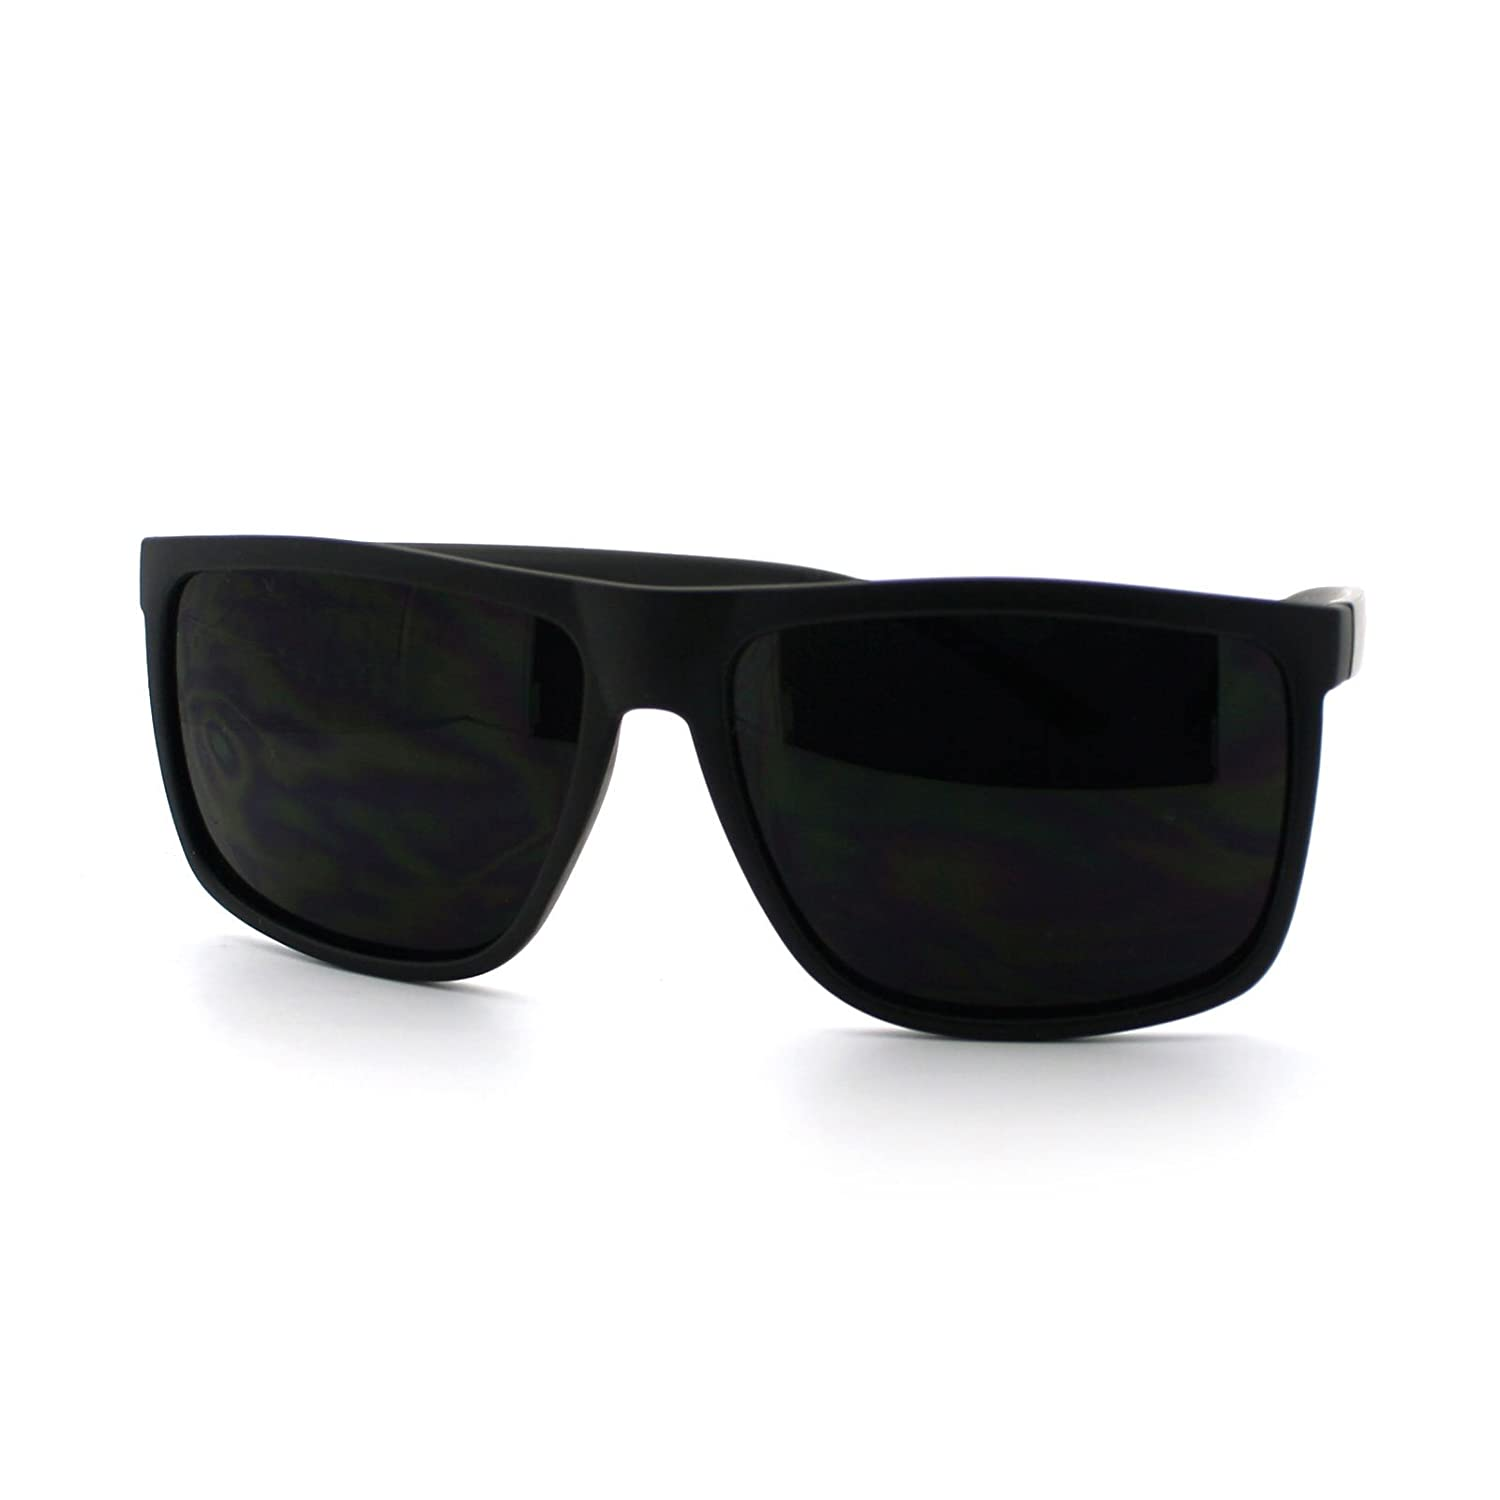 7dc823ac786 Amazon.com  Super Dark Black Lens Men s Sunglasses Classic Square Frame  Black  Clothing